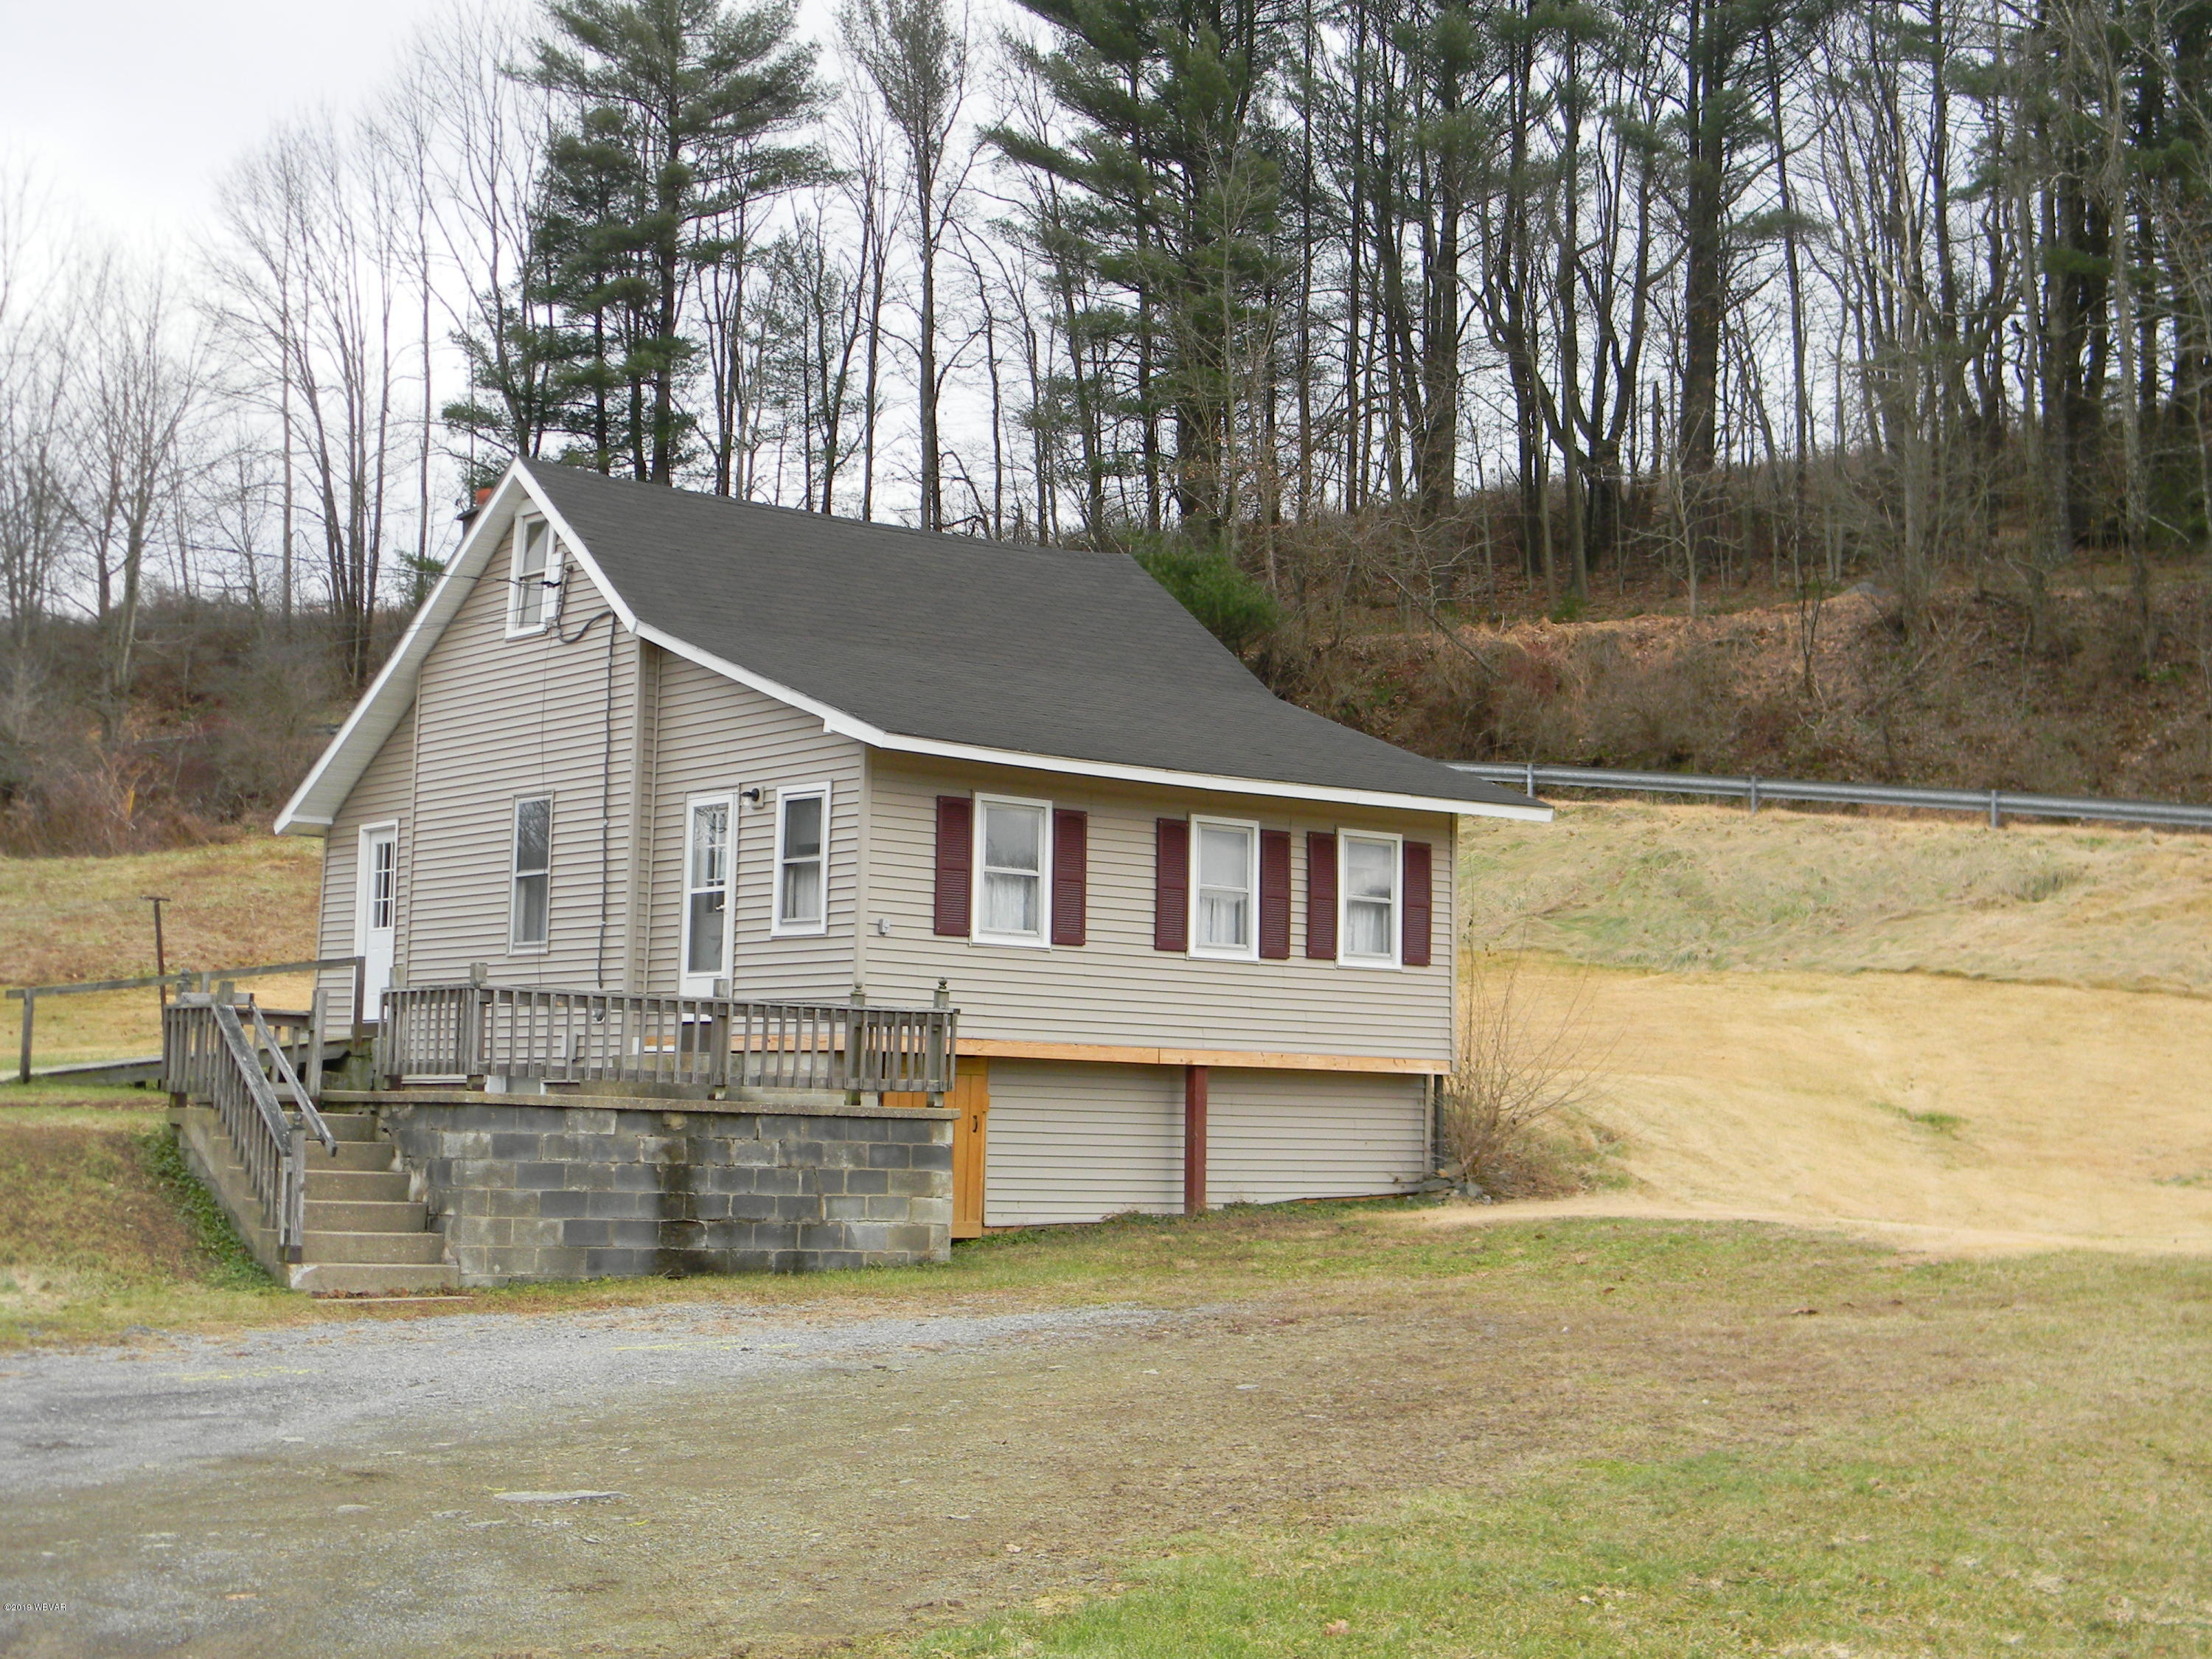 6332 ROUTE 220 HIGHWAY,Hughesville,PA 17737,3 Bedrooms Bedrooms,Residential,ROUTE 220,WB-86135